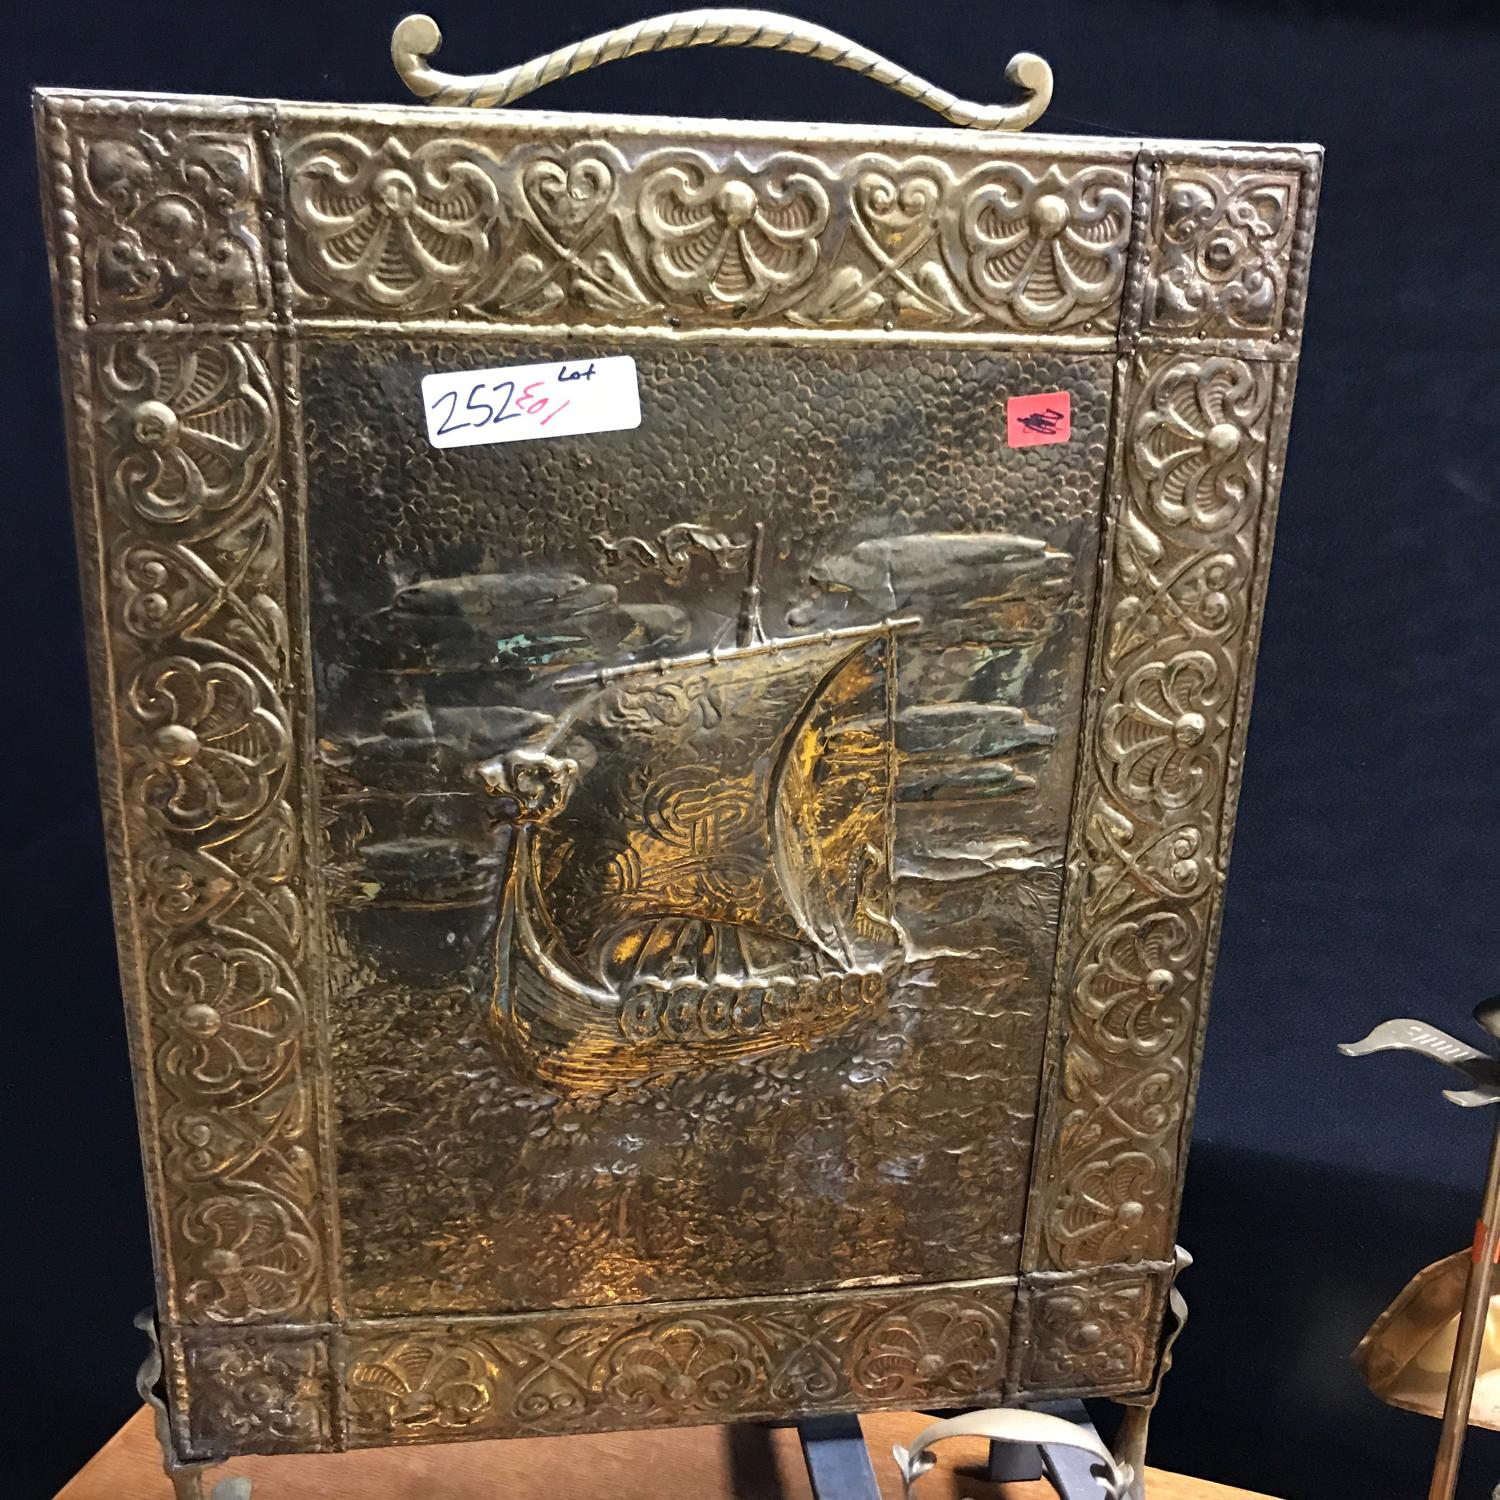 igavel auctions group of five brass fireplace ornaments including